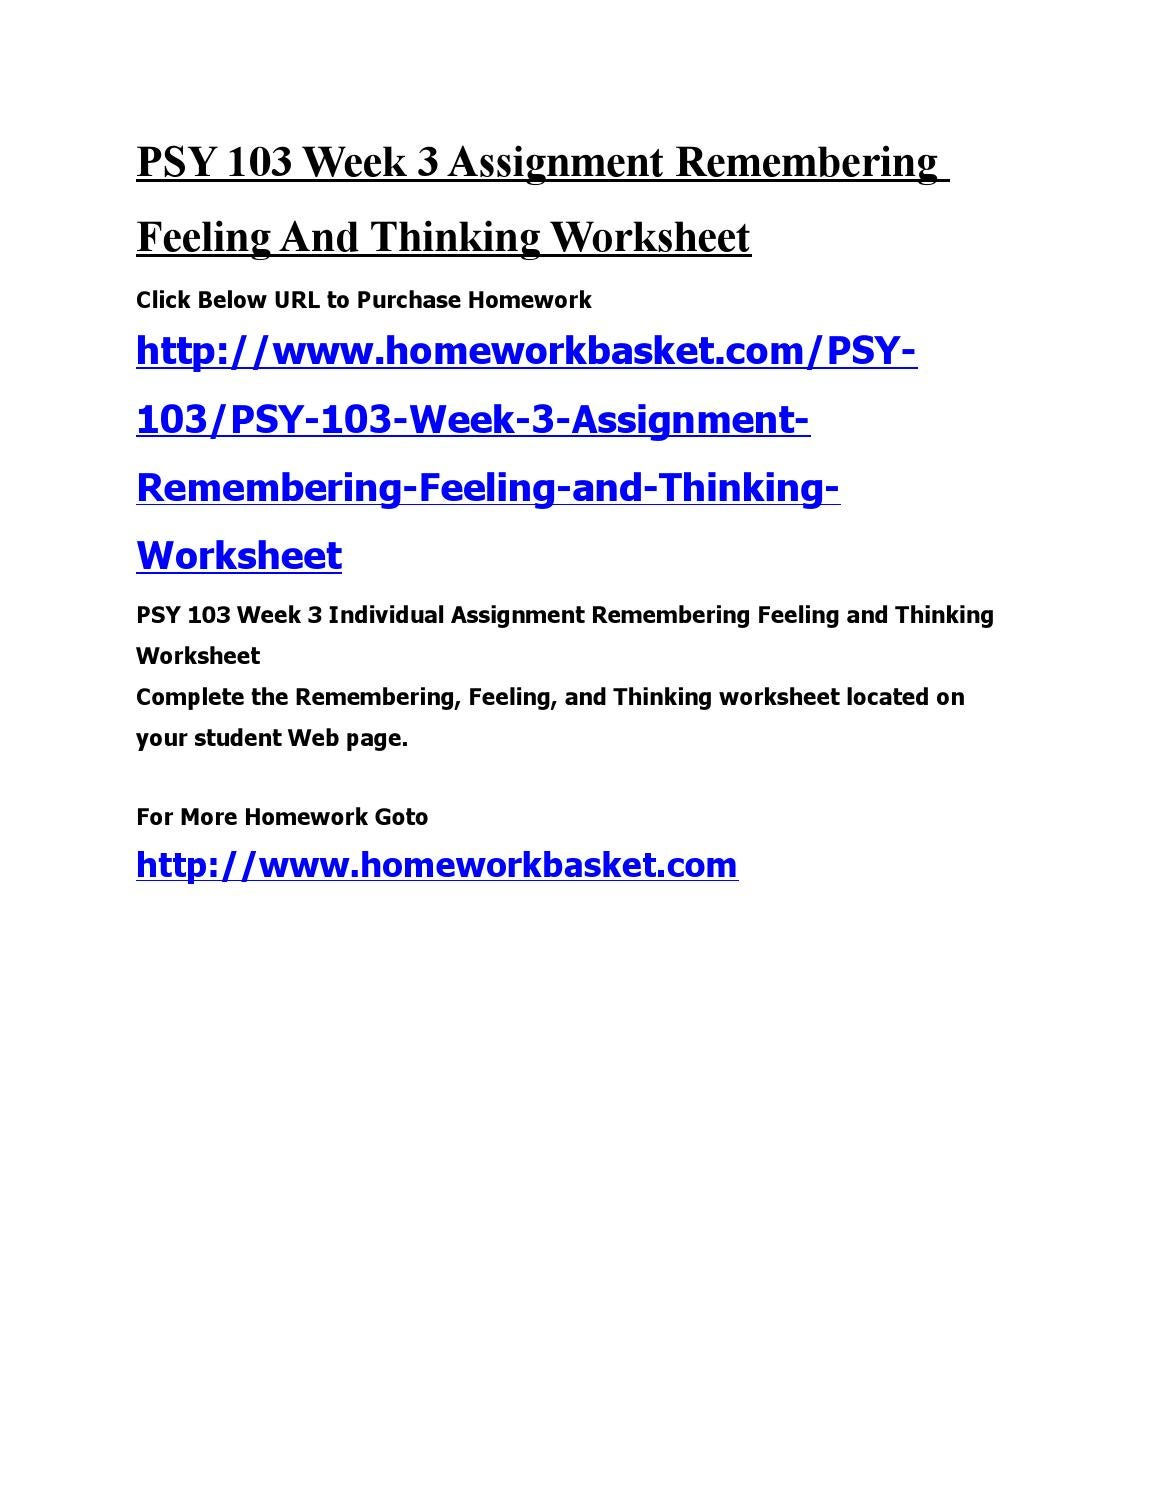 psy103 remembering feeling thinking worksheet ramirez Psy 103 week 3 assignment remembering feeling and thinking worksheet click following link to purchase.